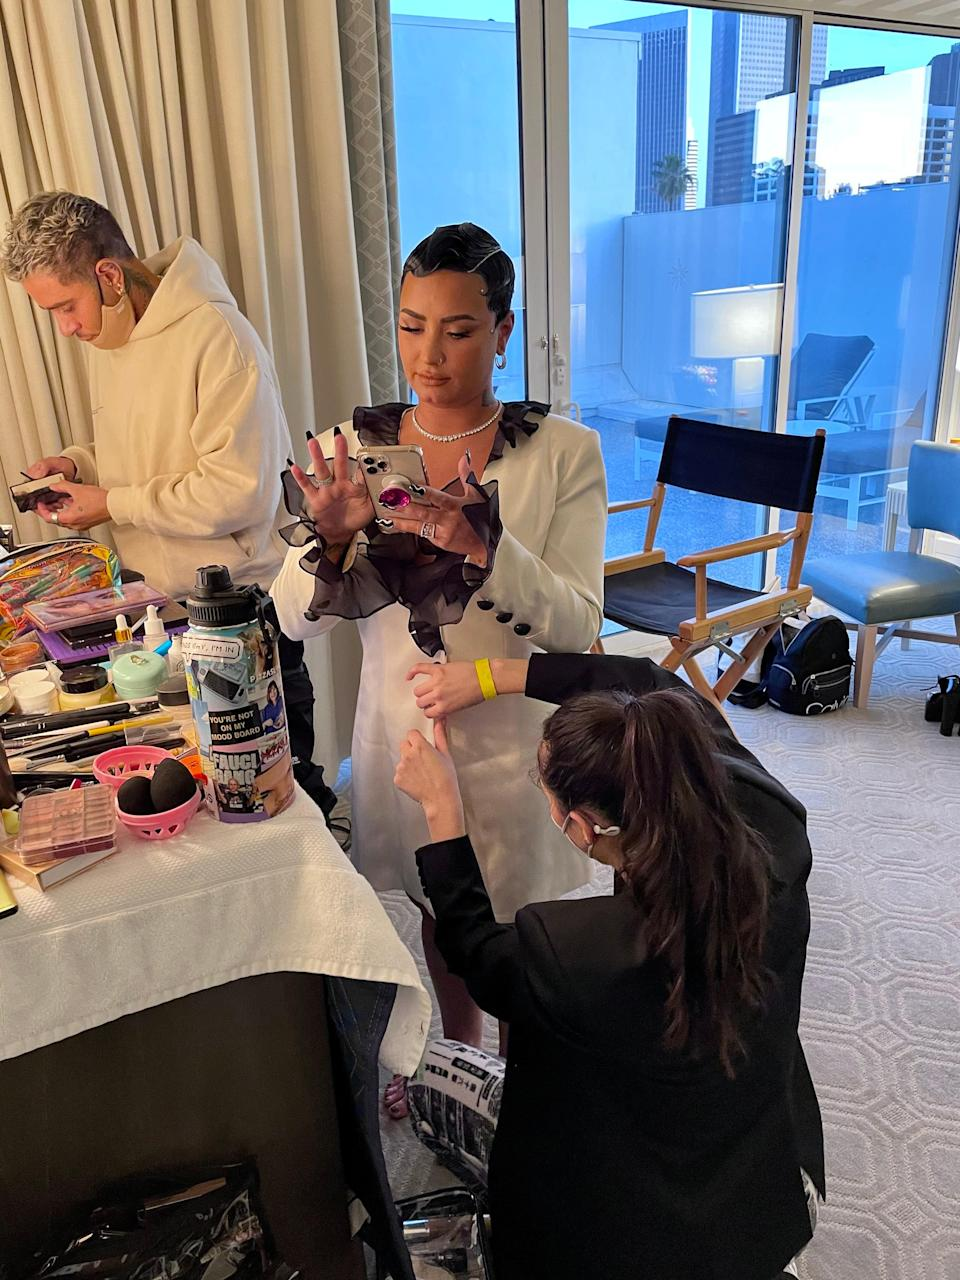 My glam team—Siena, Cesar, Rokael, and Natalie—got me ready before I hit the carpet. Glam is always a time for me to unwind, relax, and hang with my team.